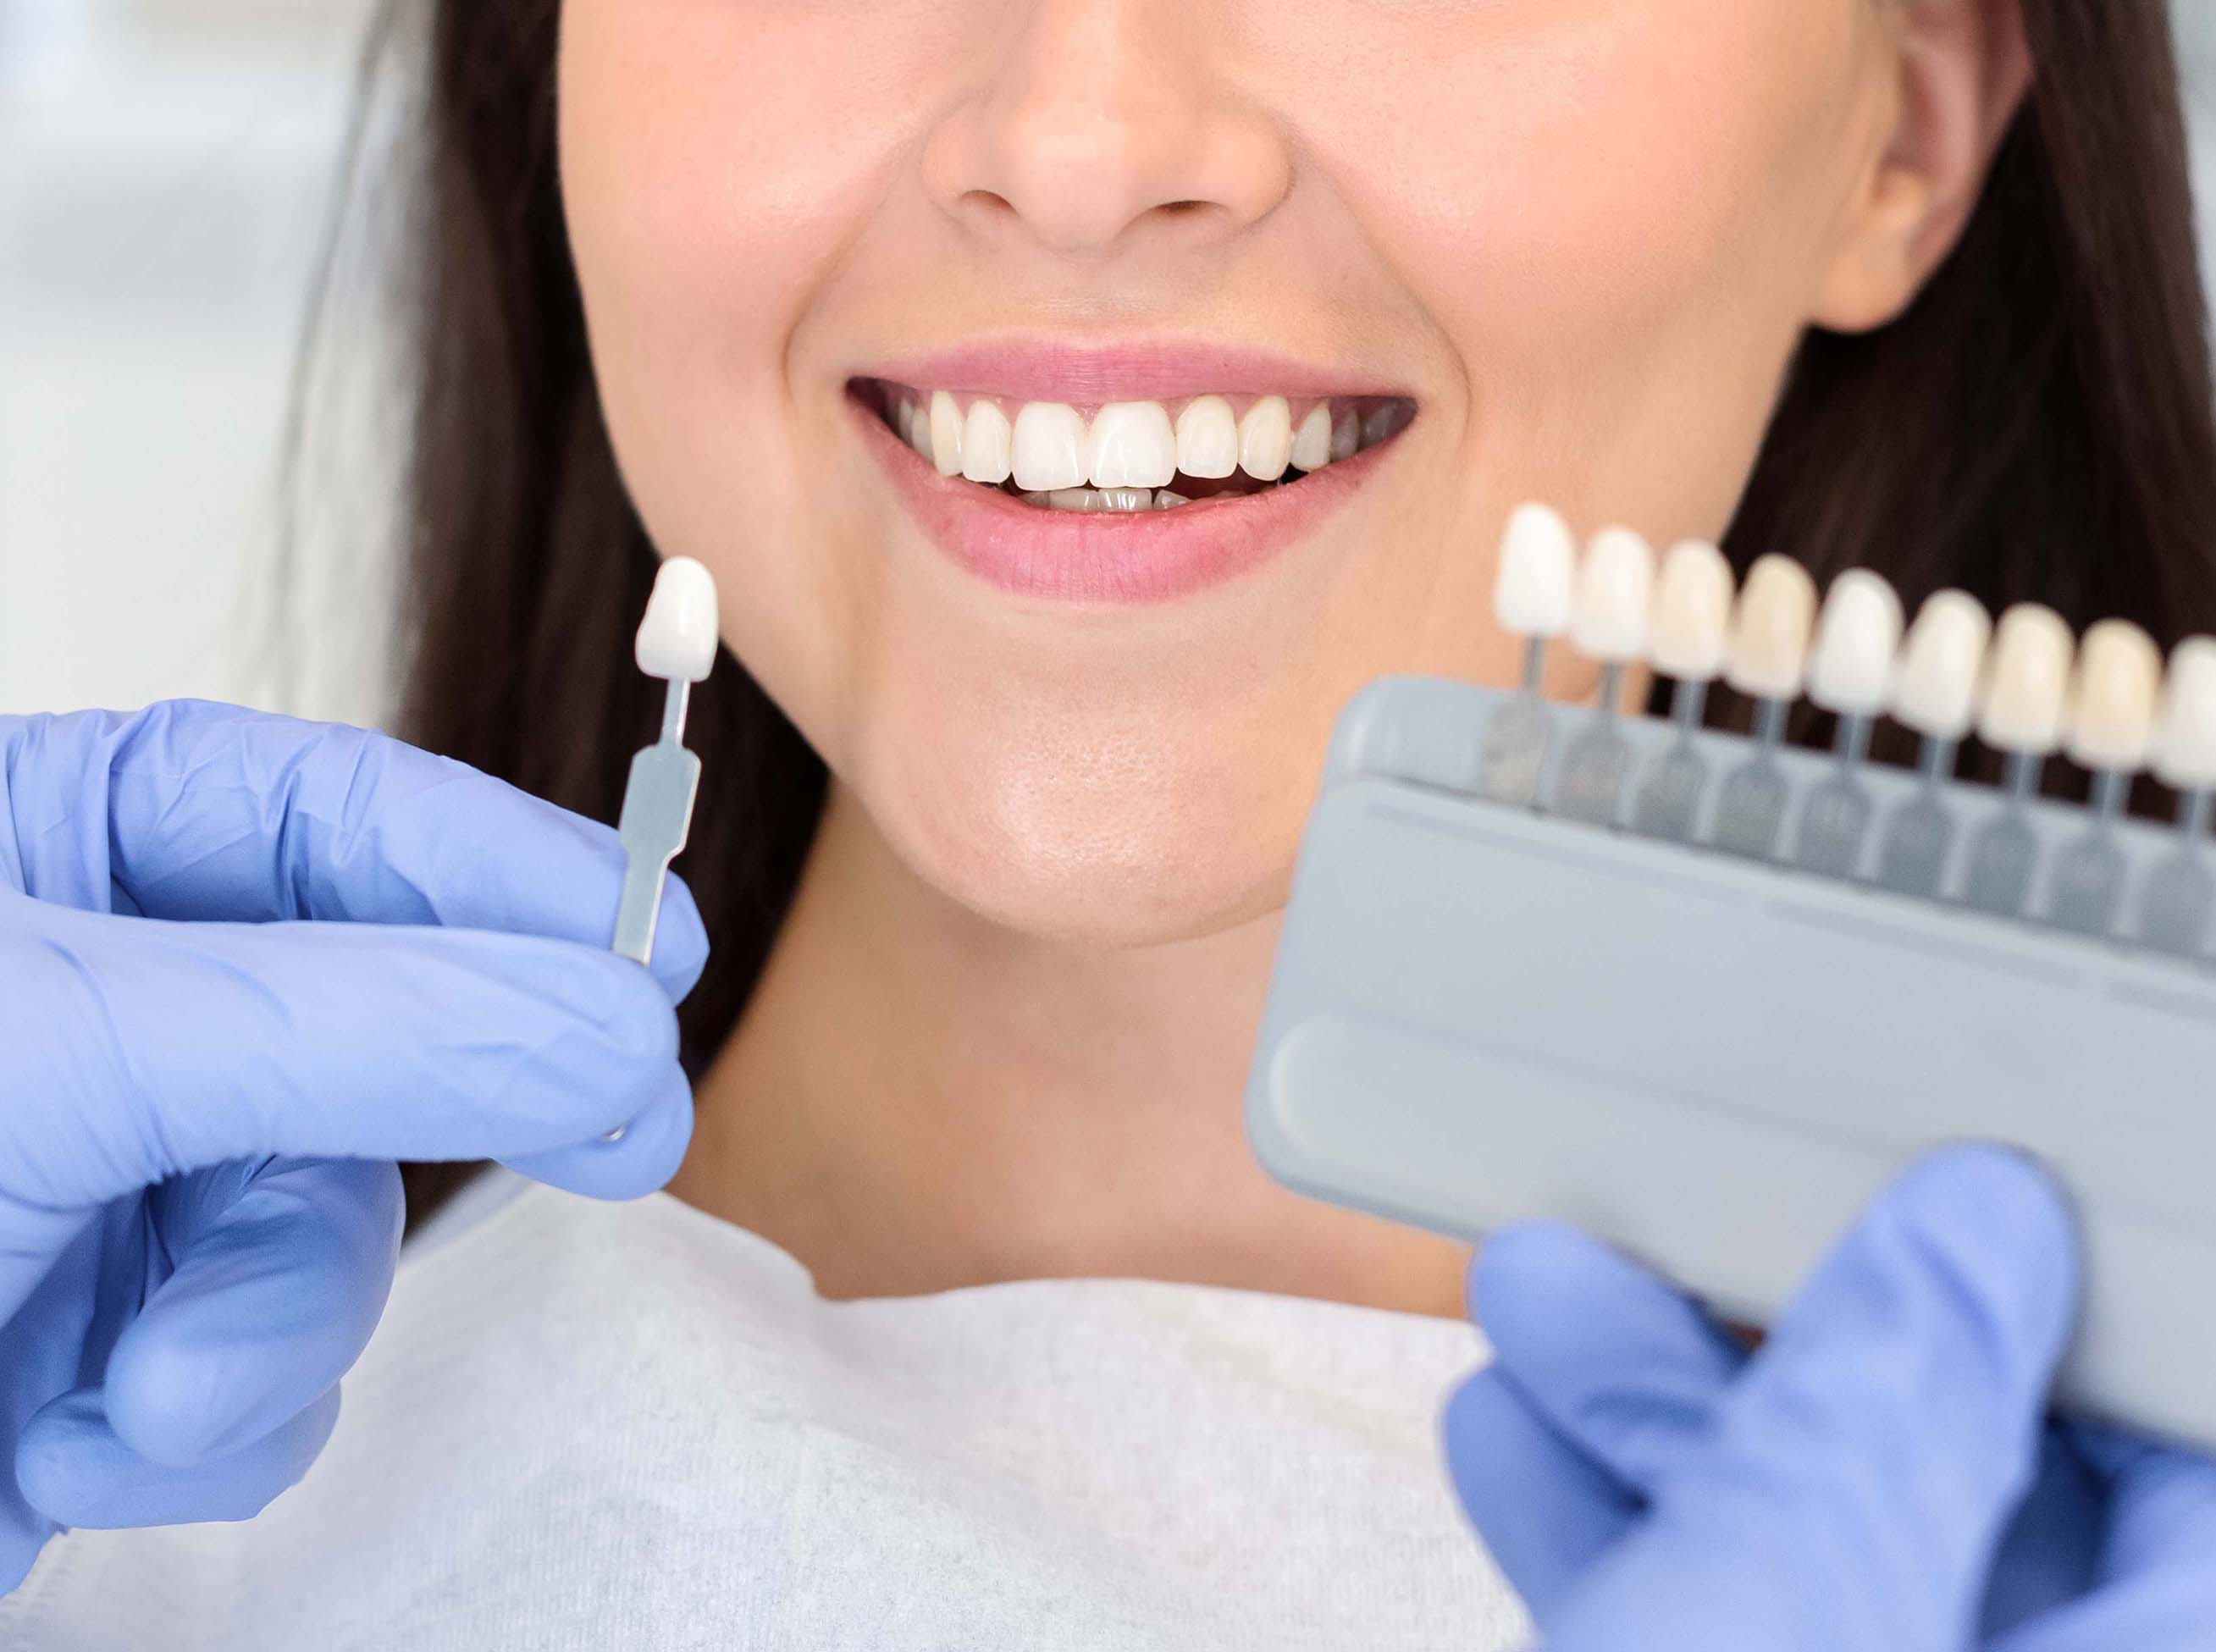 Whitening, Cleaning, Cosmetic Proceadures